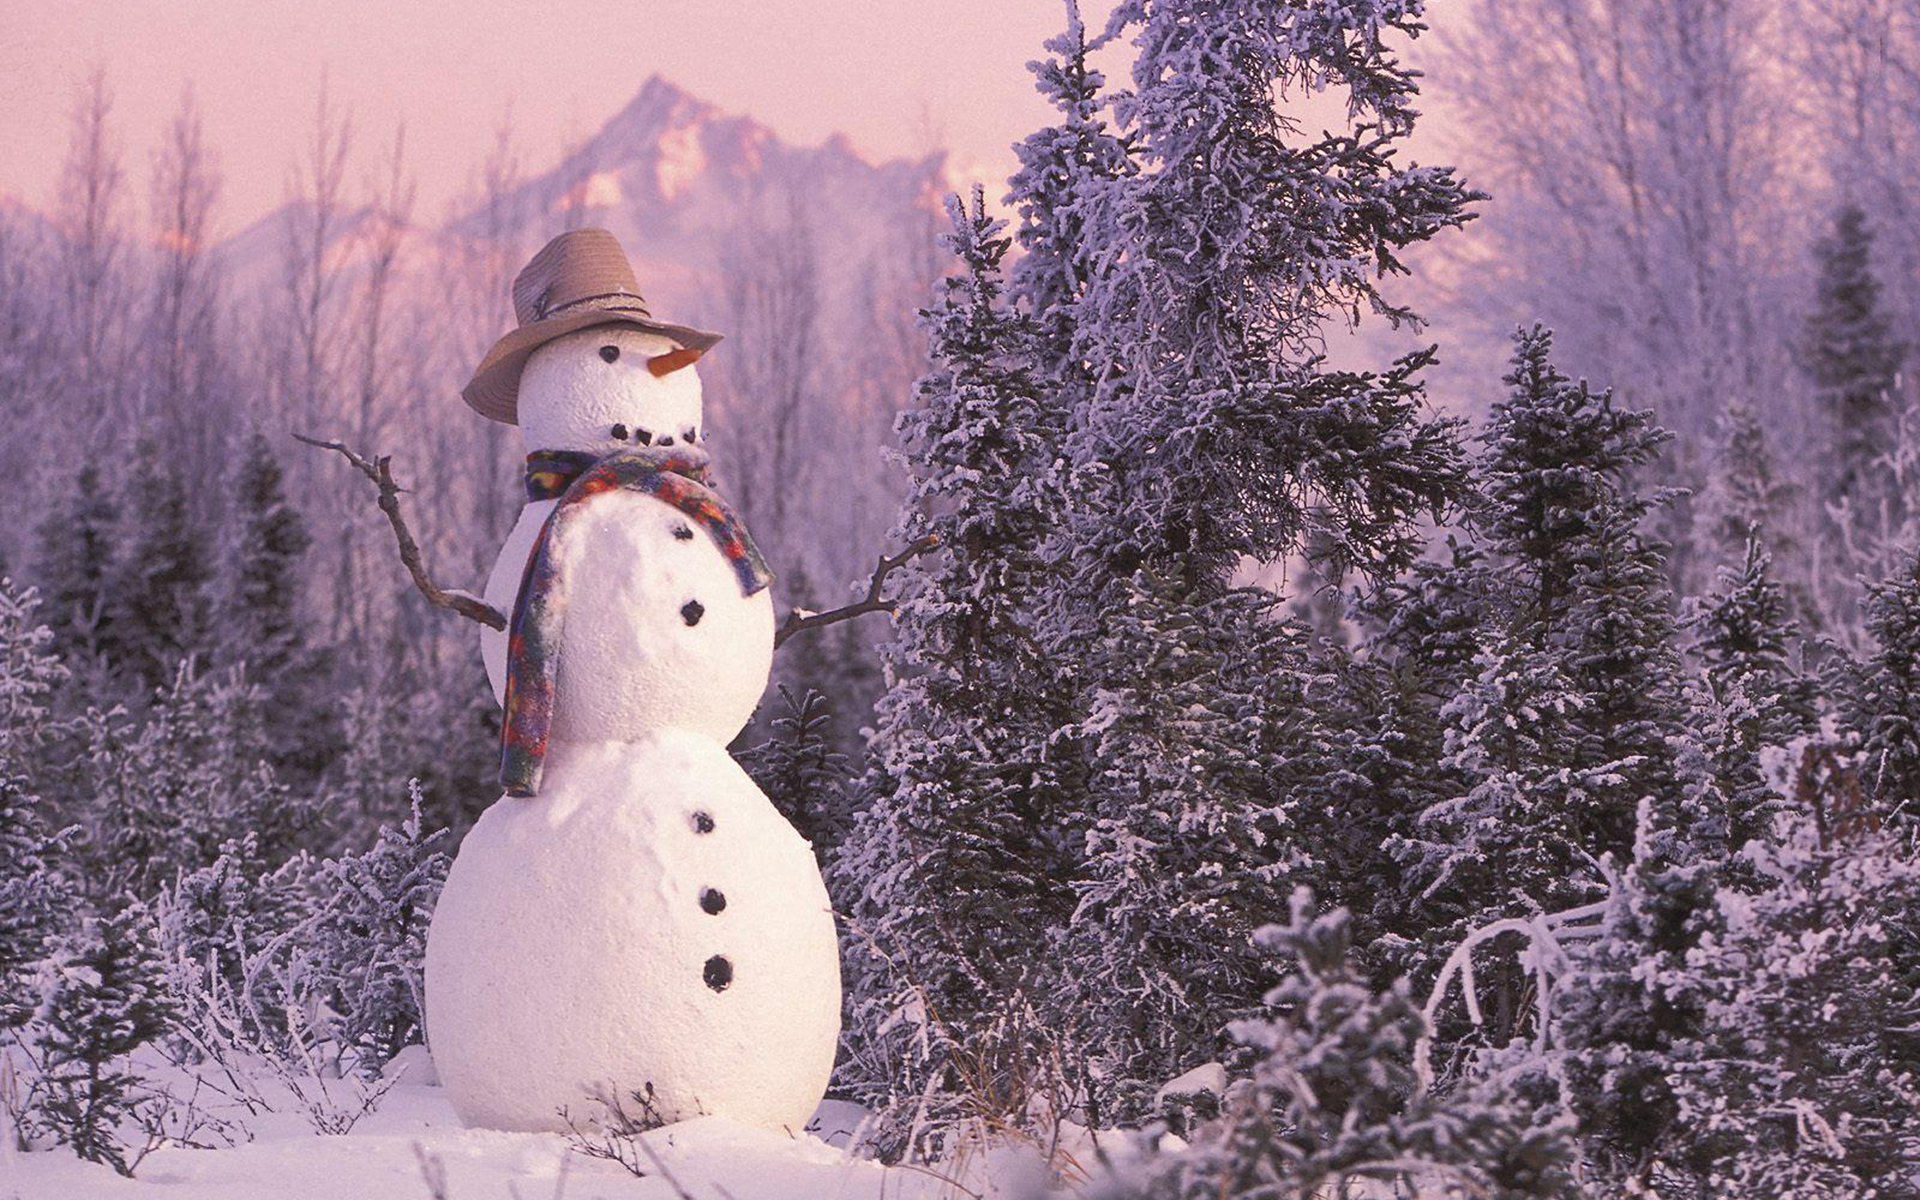 snowman mountain nature HD Wallpaper